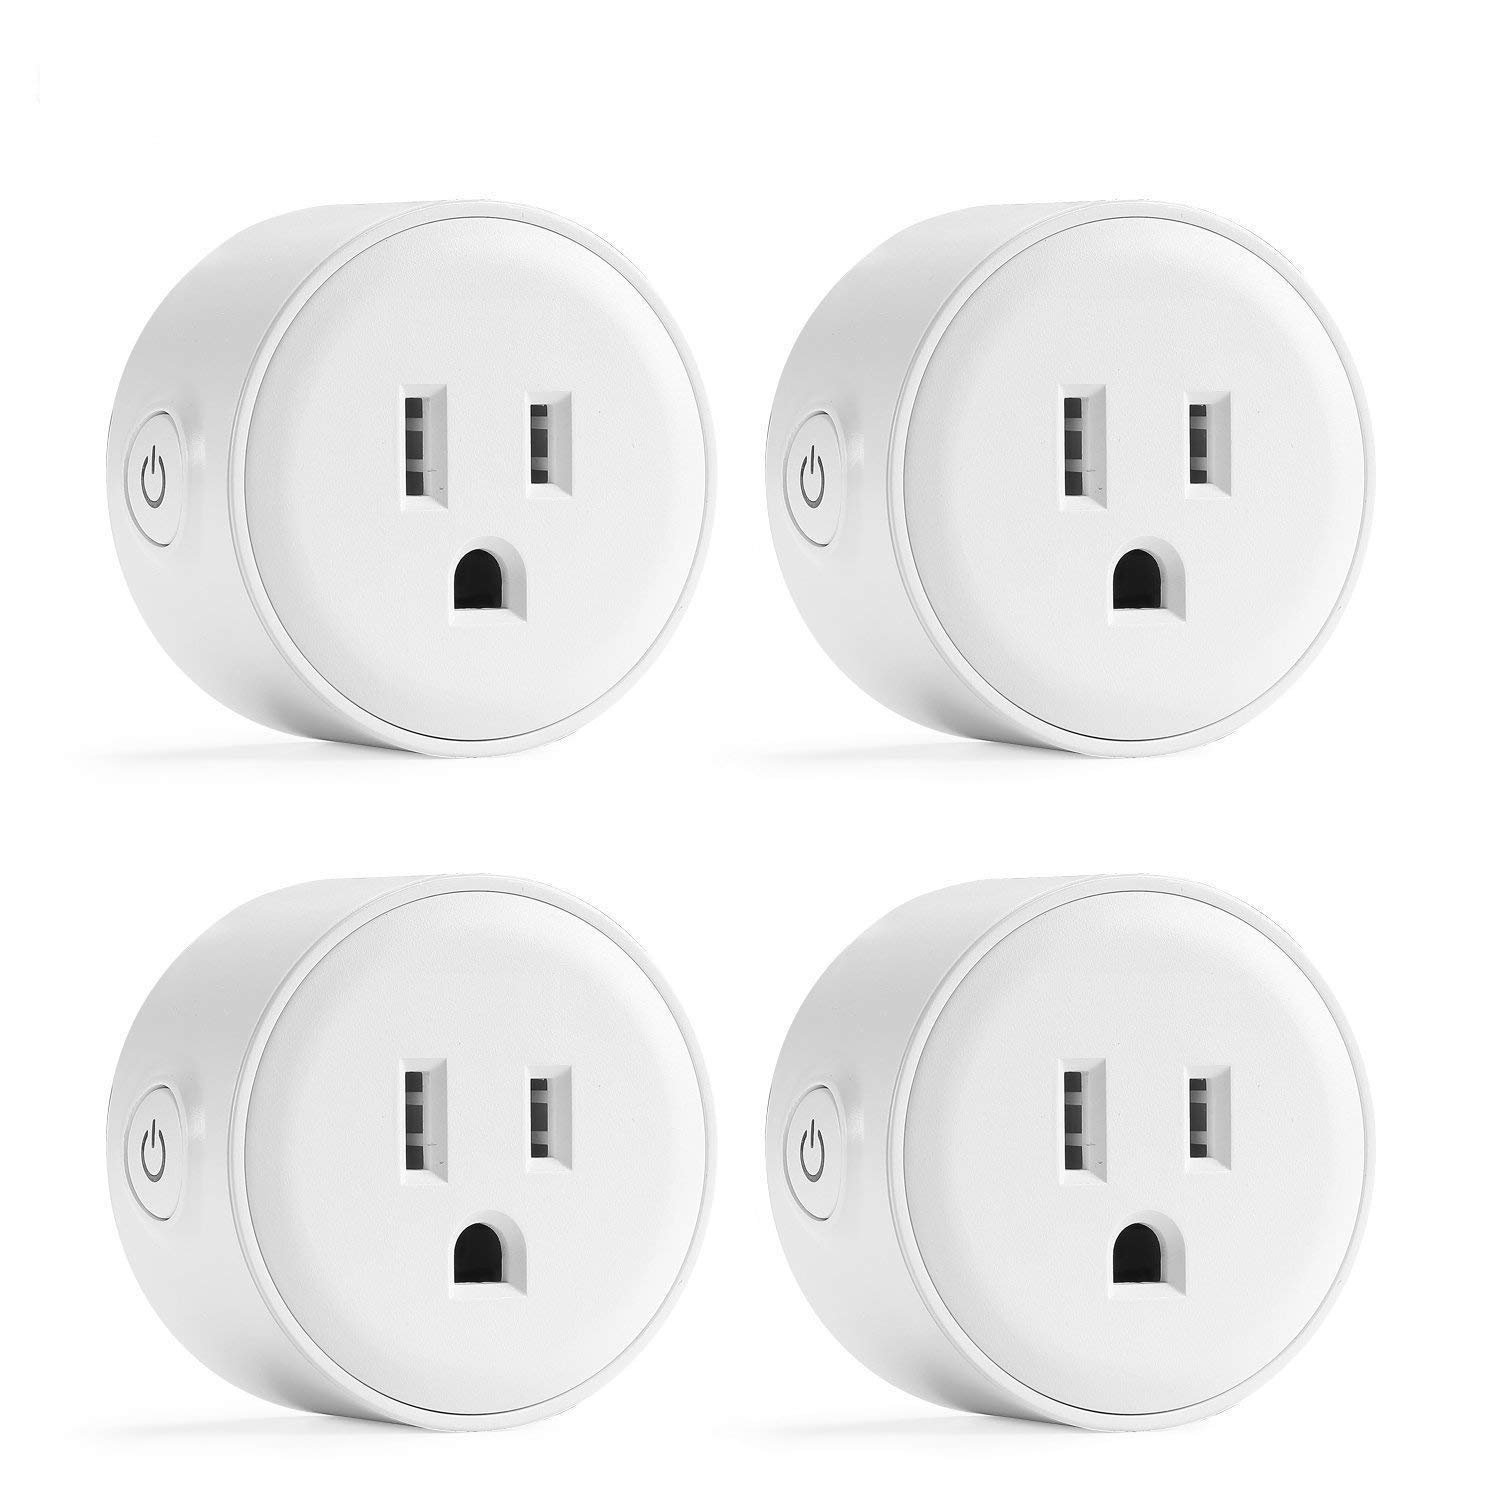 WiFi Smart Plug Mini, Astropanda Smart Home Power Control Socket, Remote Control Your Household Equipment from Everywhere, No Hub Required, Works with Amazon Alexa and other assitants (4)